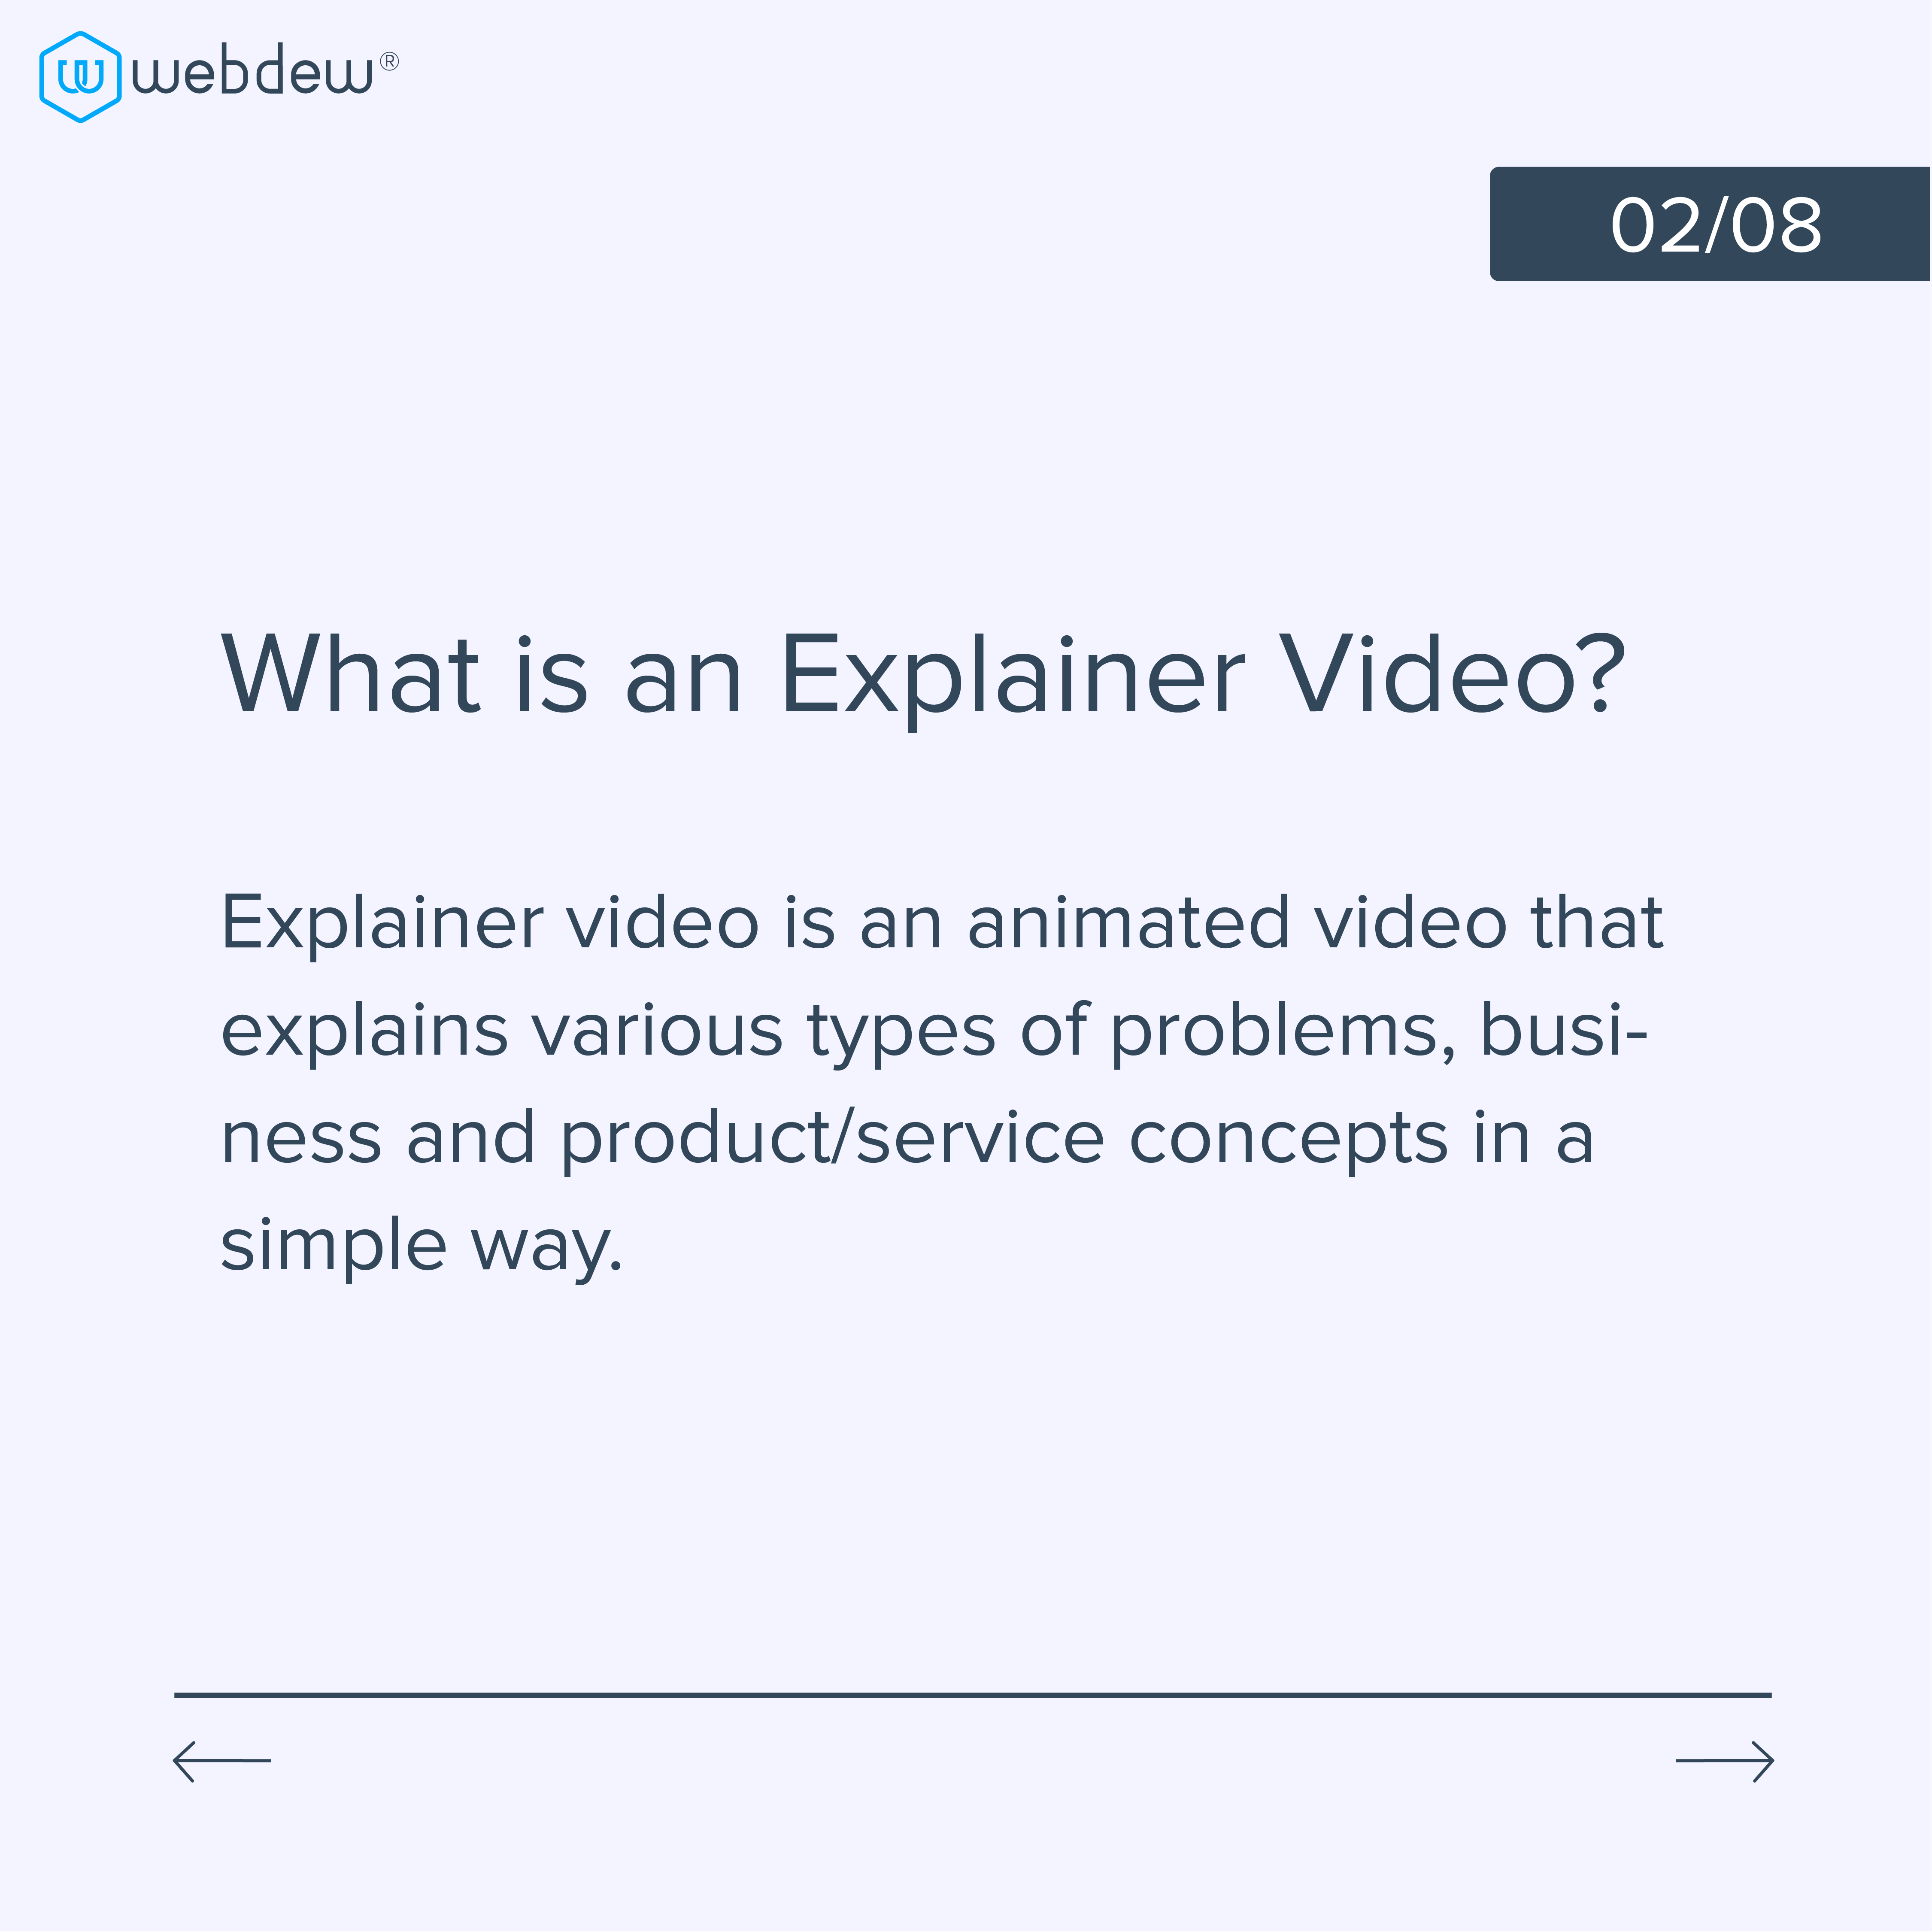 what-is-an-explainer-video